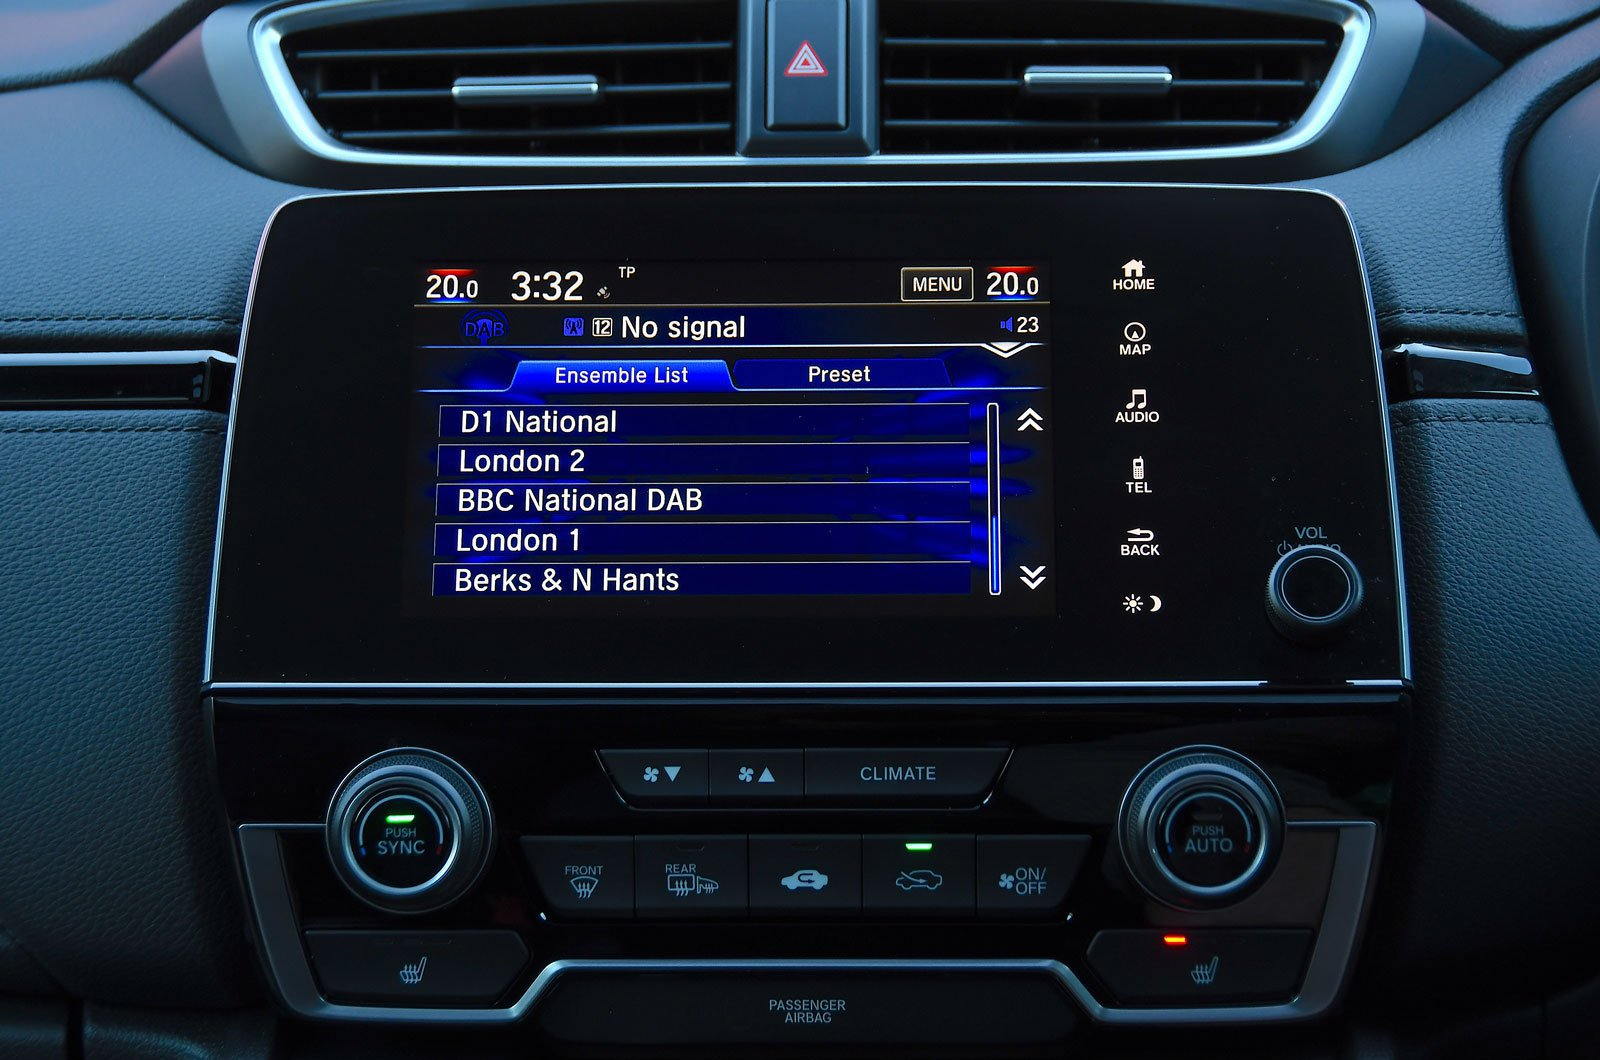 Honda infotainment screen